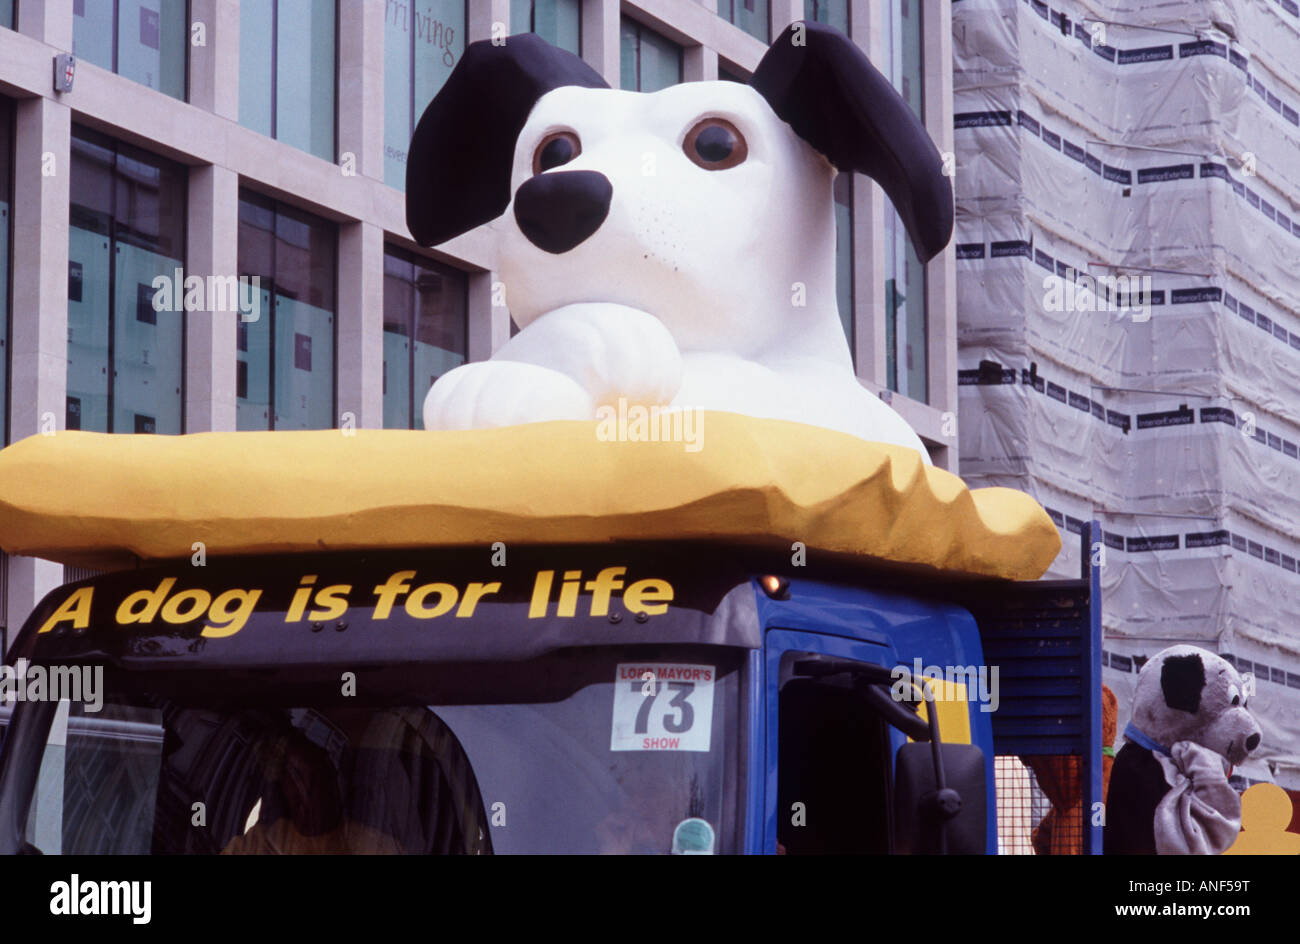 A dog is for life: Large black and white puppy with crossed paws on a dog rescue float, Lord Mayor's Show, City - Stock Image